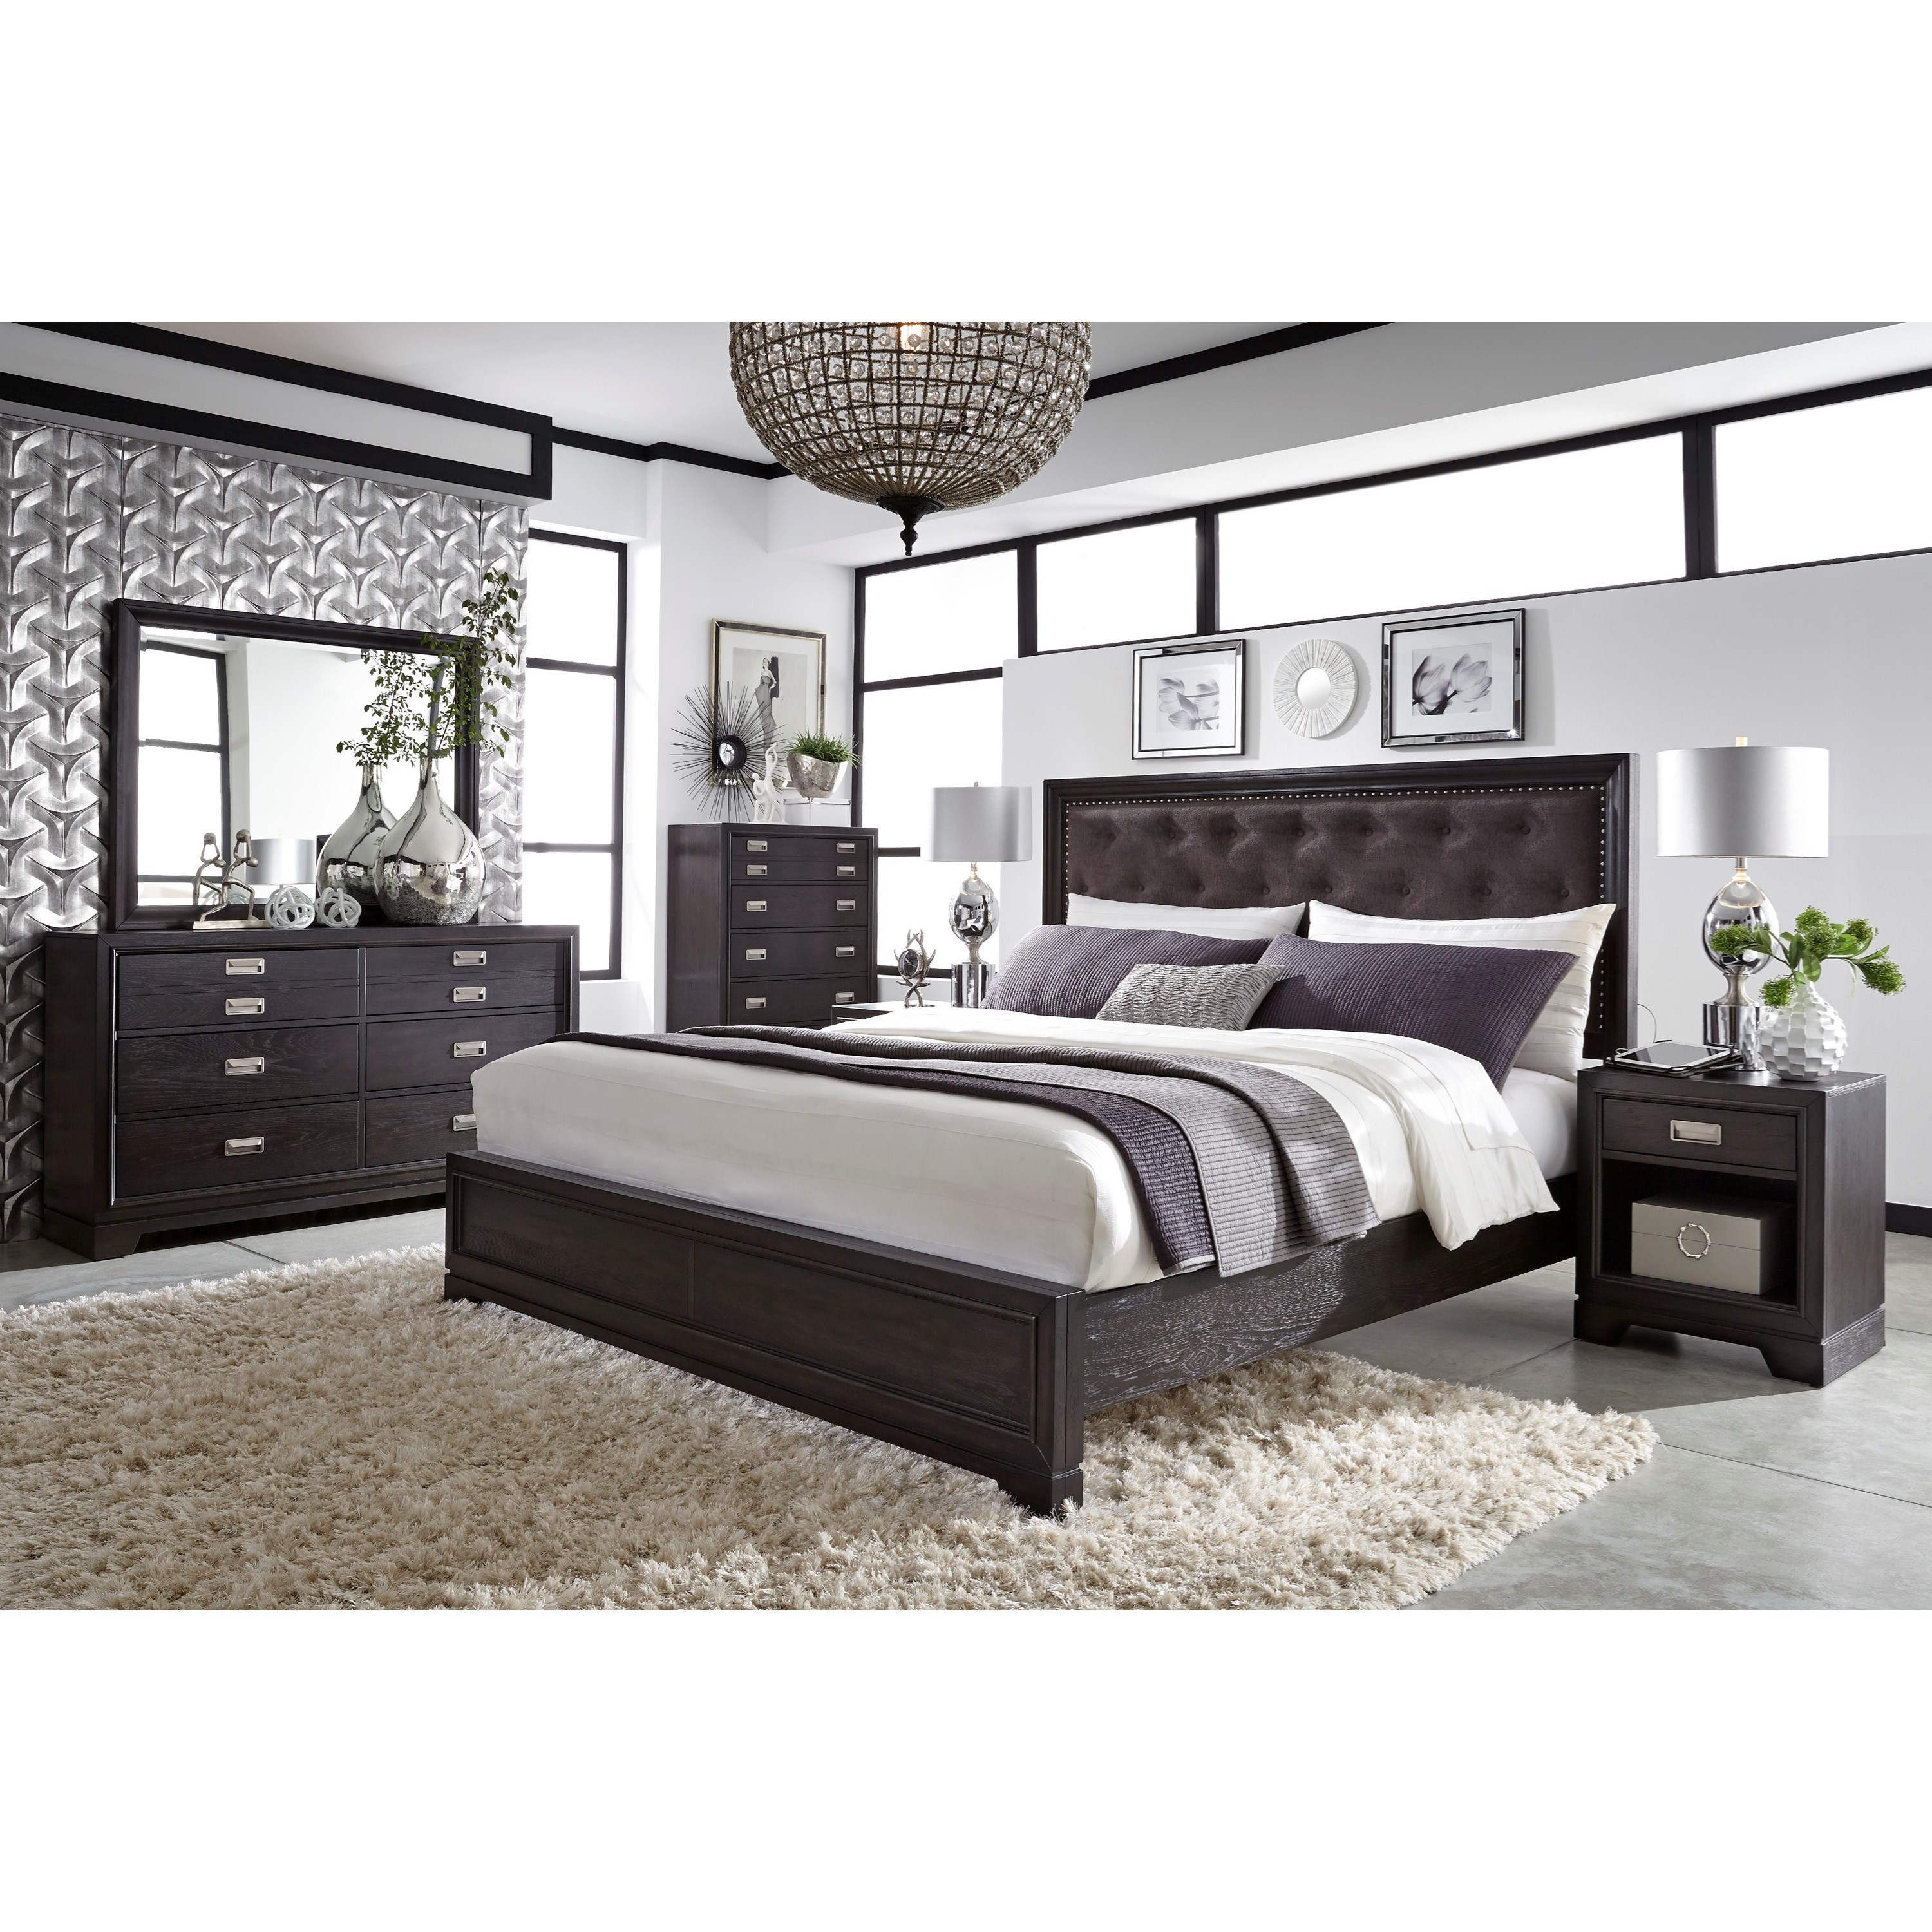 Front Street California King Upholstered Bed by Aspenhome at Bullard Furniture